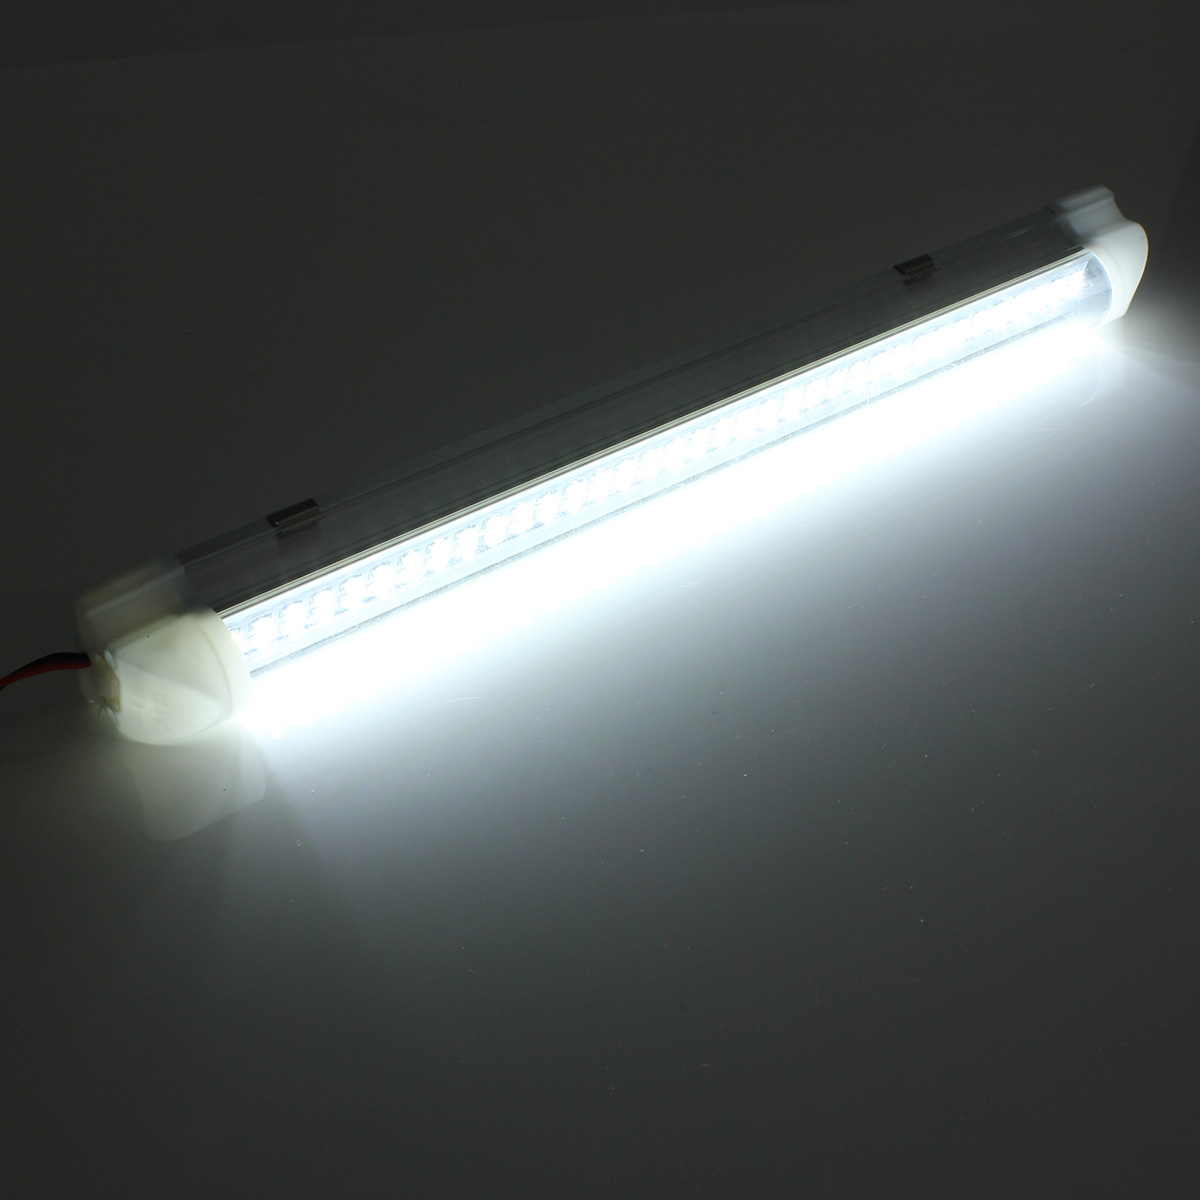 Universal Interior 34cm LED Light Strip Lamp White 4Pcs with ON/OFF Switch for Car Auto Caravan Bus